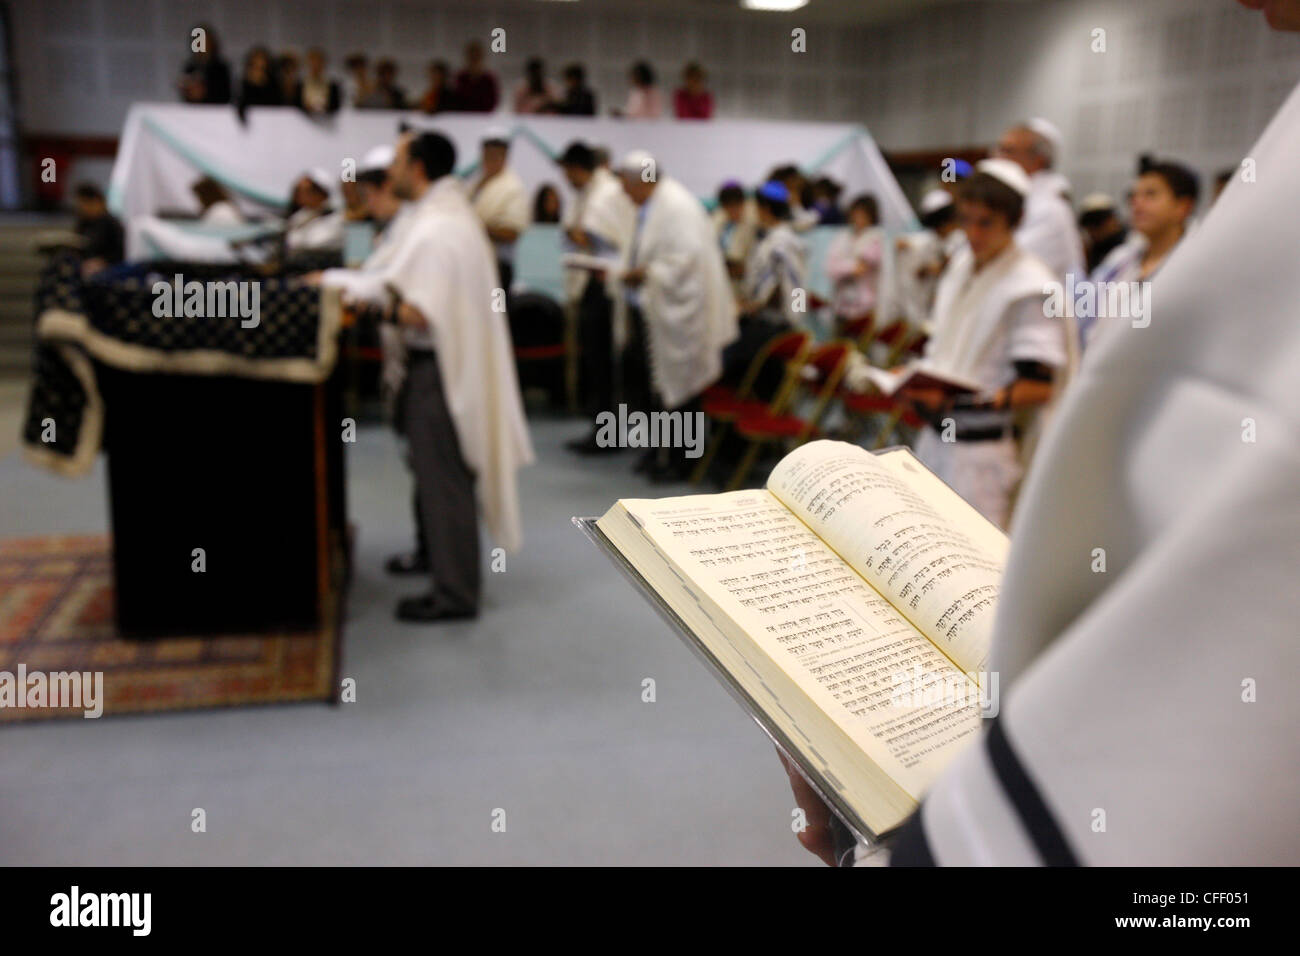 Torah reading in a synagogue, Paris, France, Europe - Stock Image